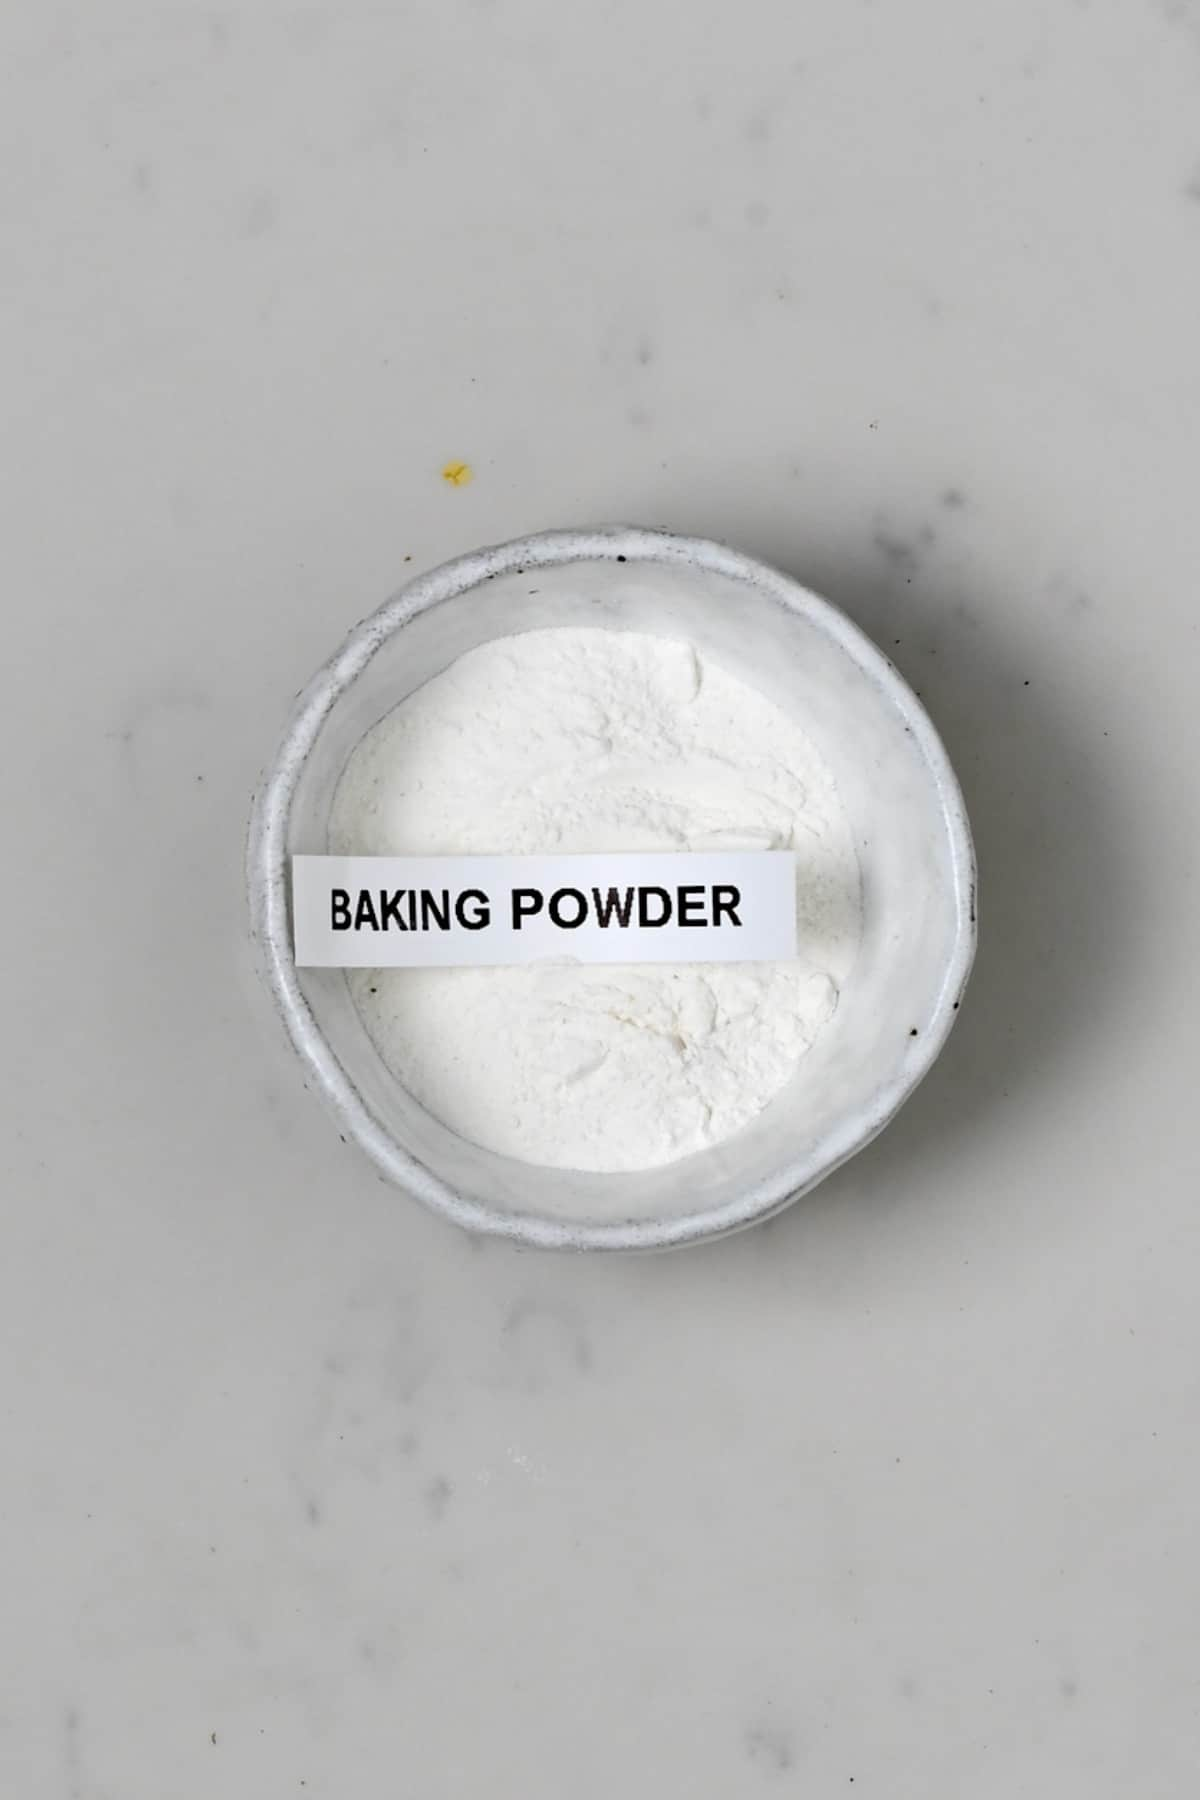 Baking powder in a small bowl